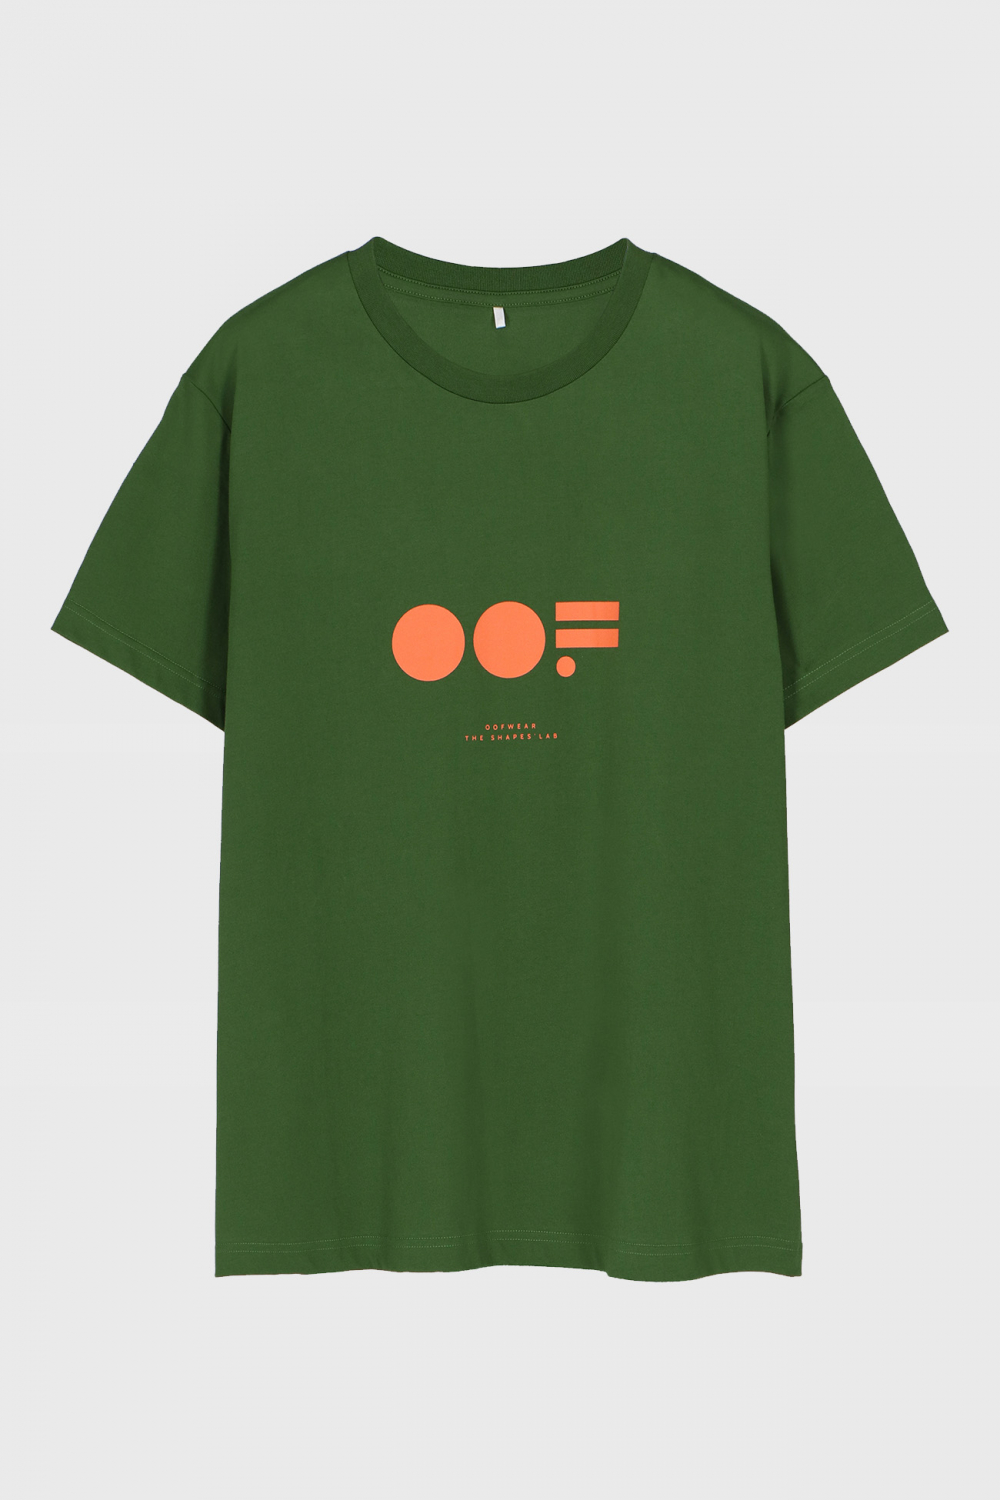 Men's crew neck t-shirt in green cotton with logo